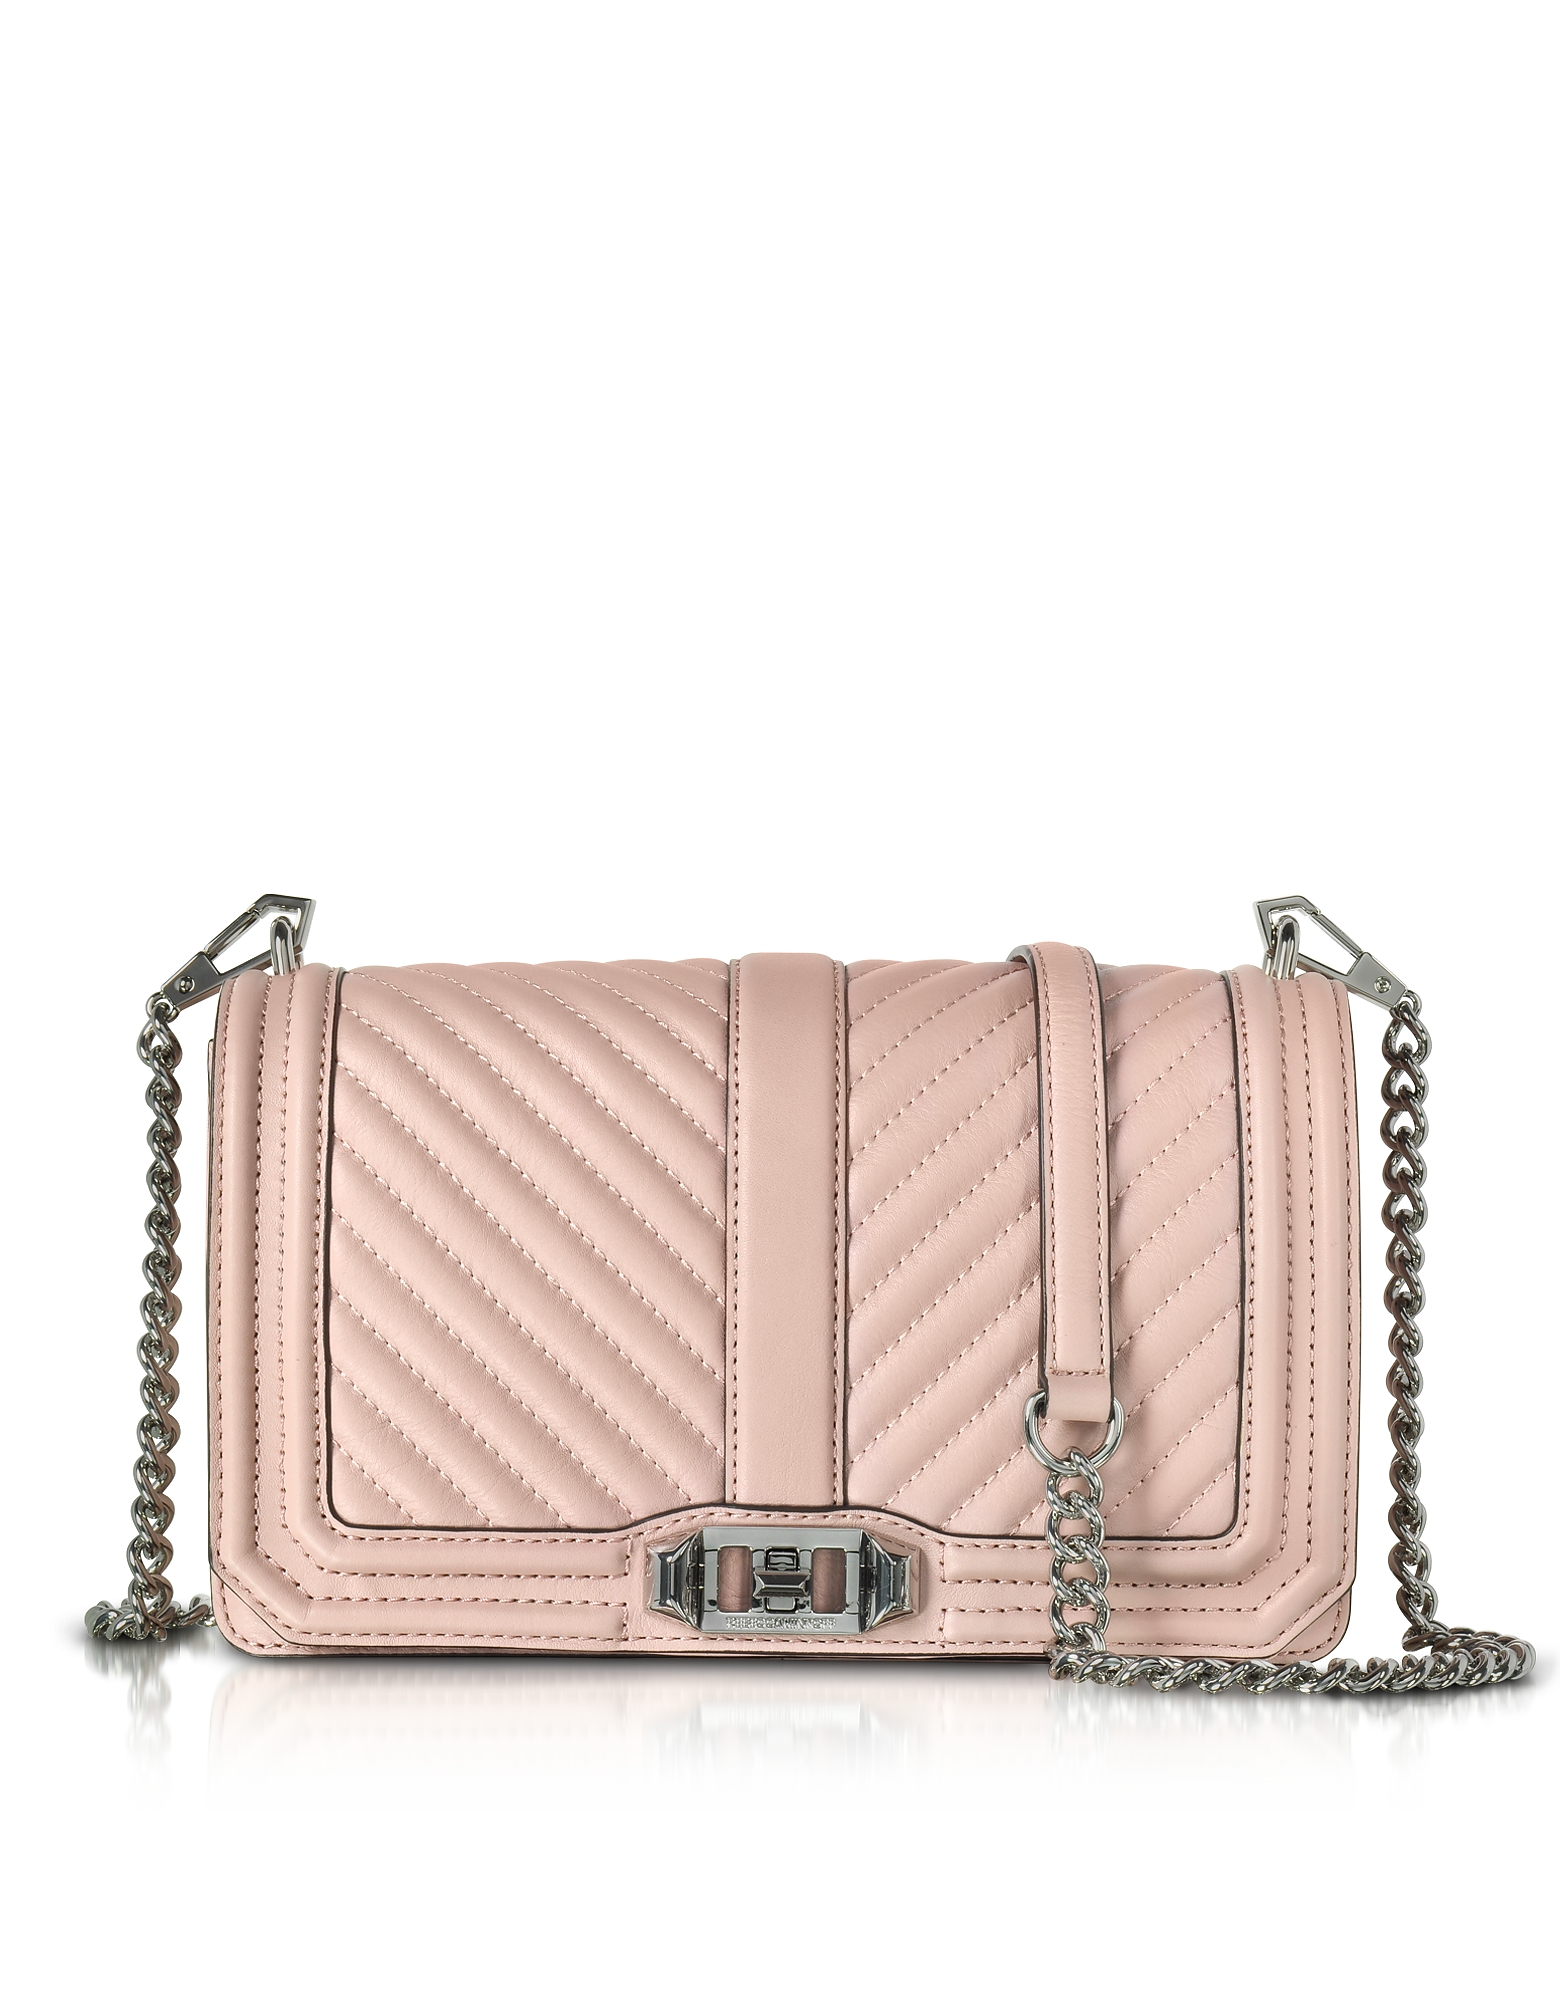 Rebecca Minkoff Handbags, Vintage Pink Leather Chevron Quilted Love Crossbody Bag